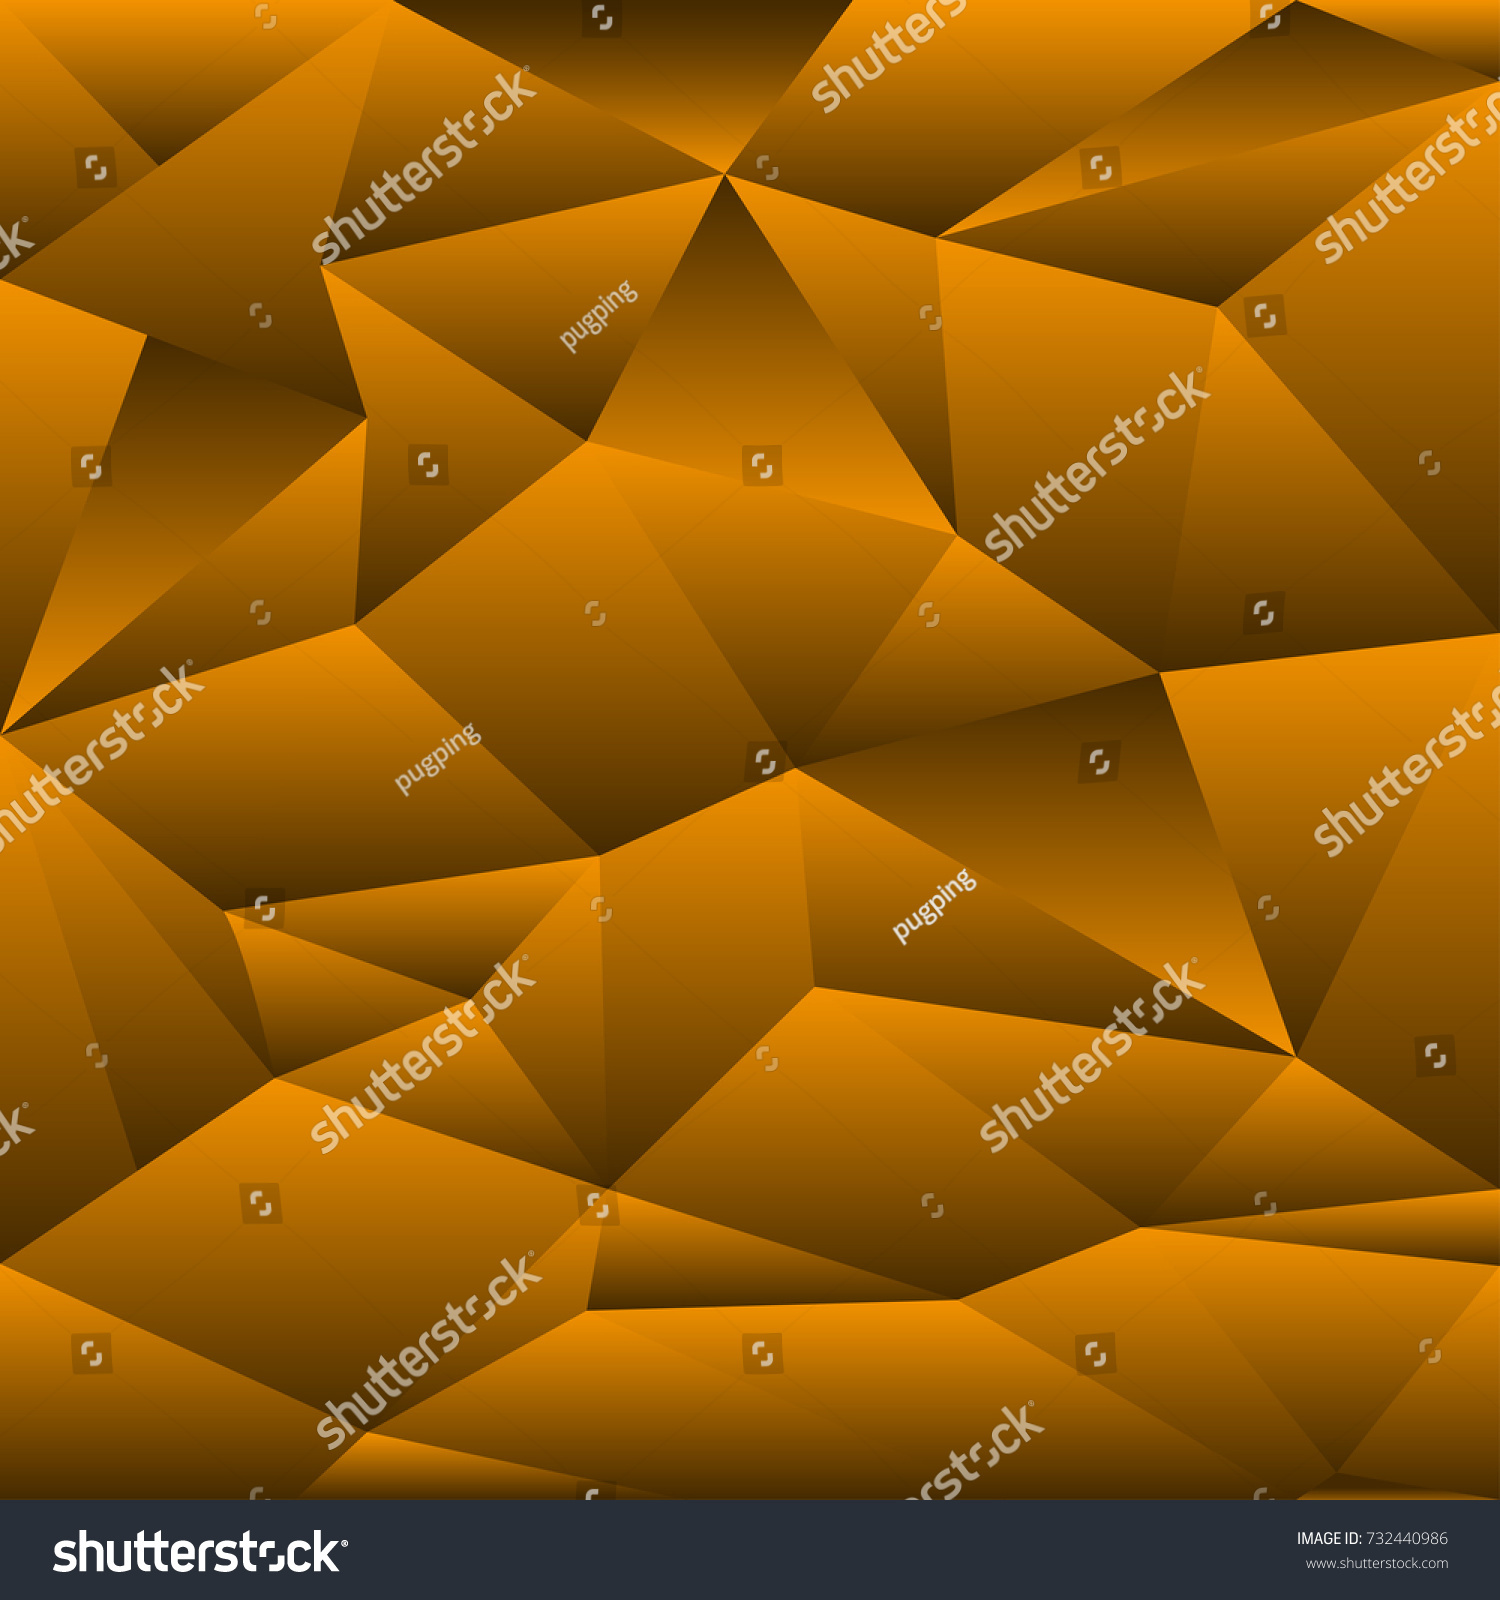 Download Wallpaper Halloween Gold - stock-photo-halloween-orange-black-gradient-abstract-polygon-background-wallpaper-732440986  Gallery_519590.jpg